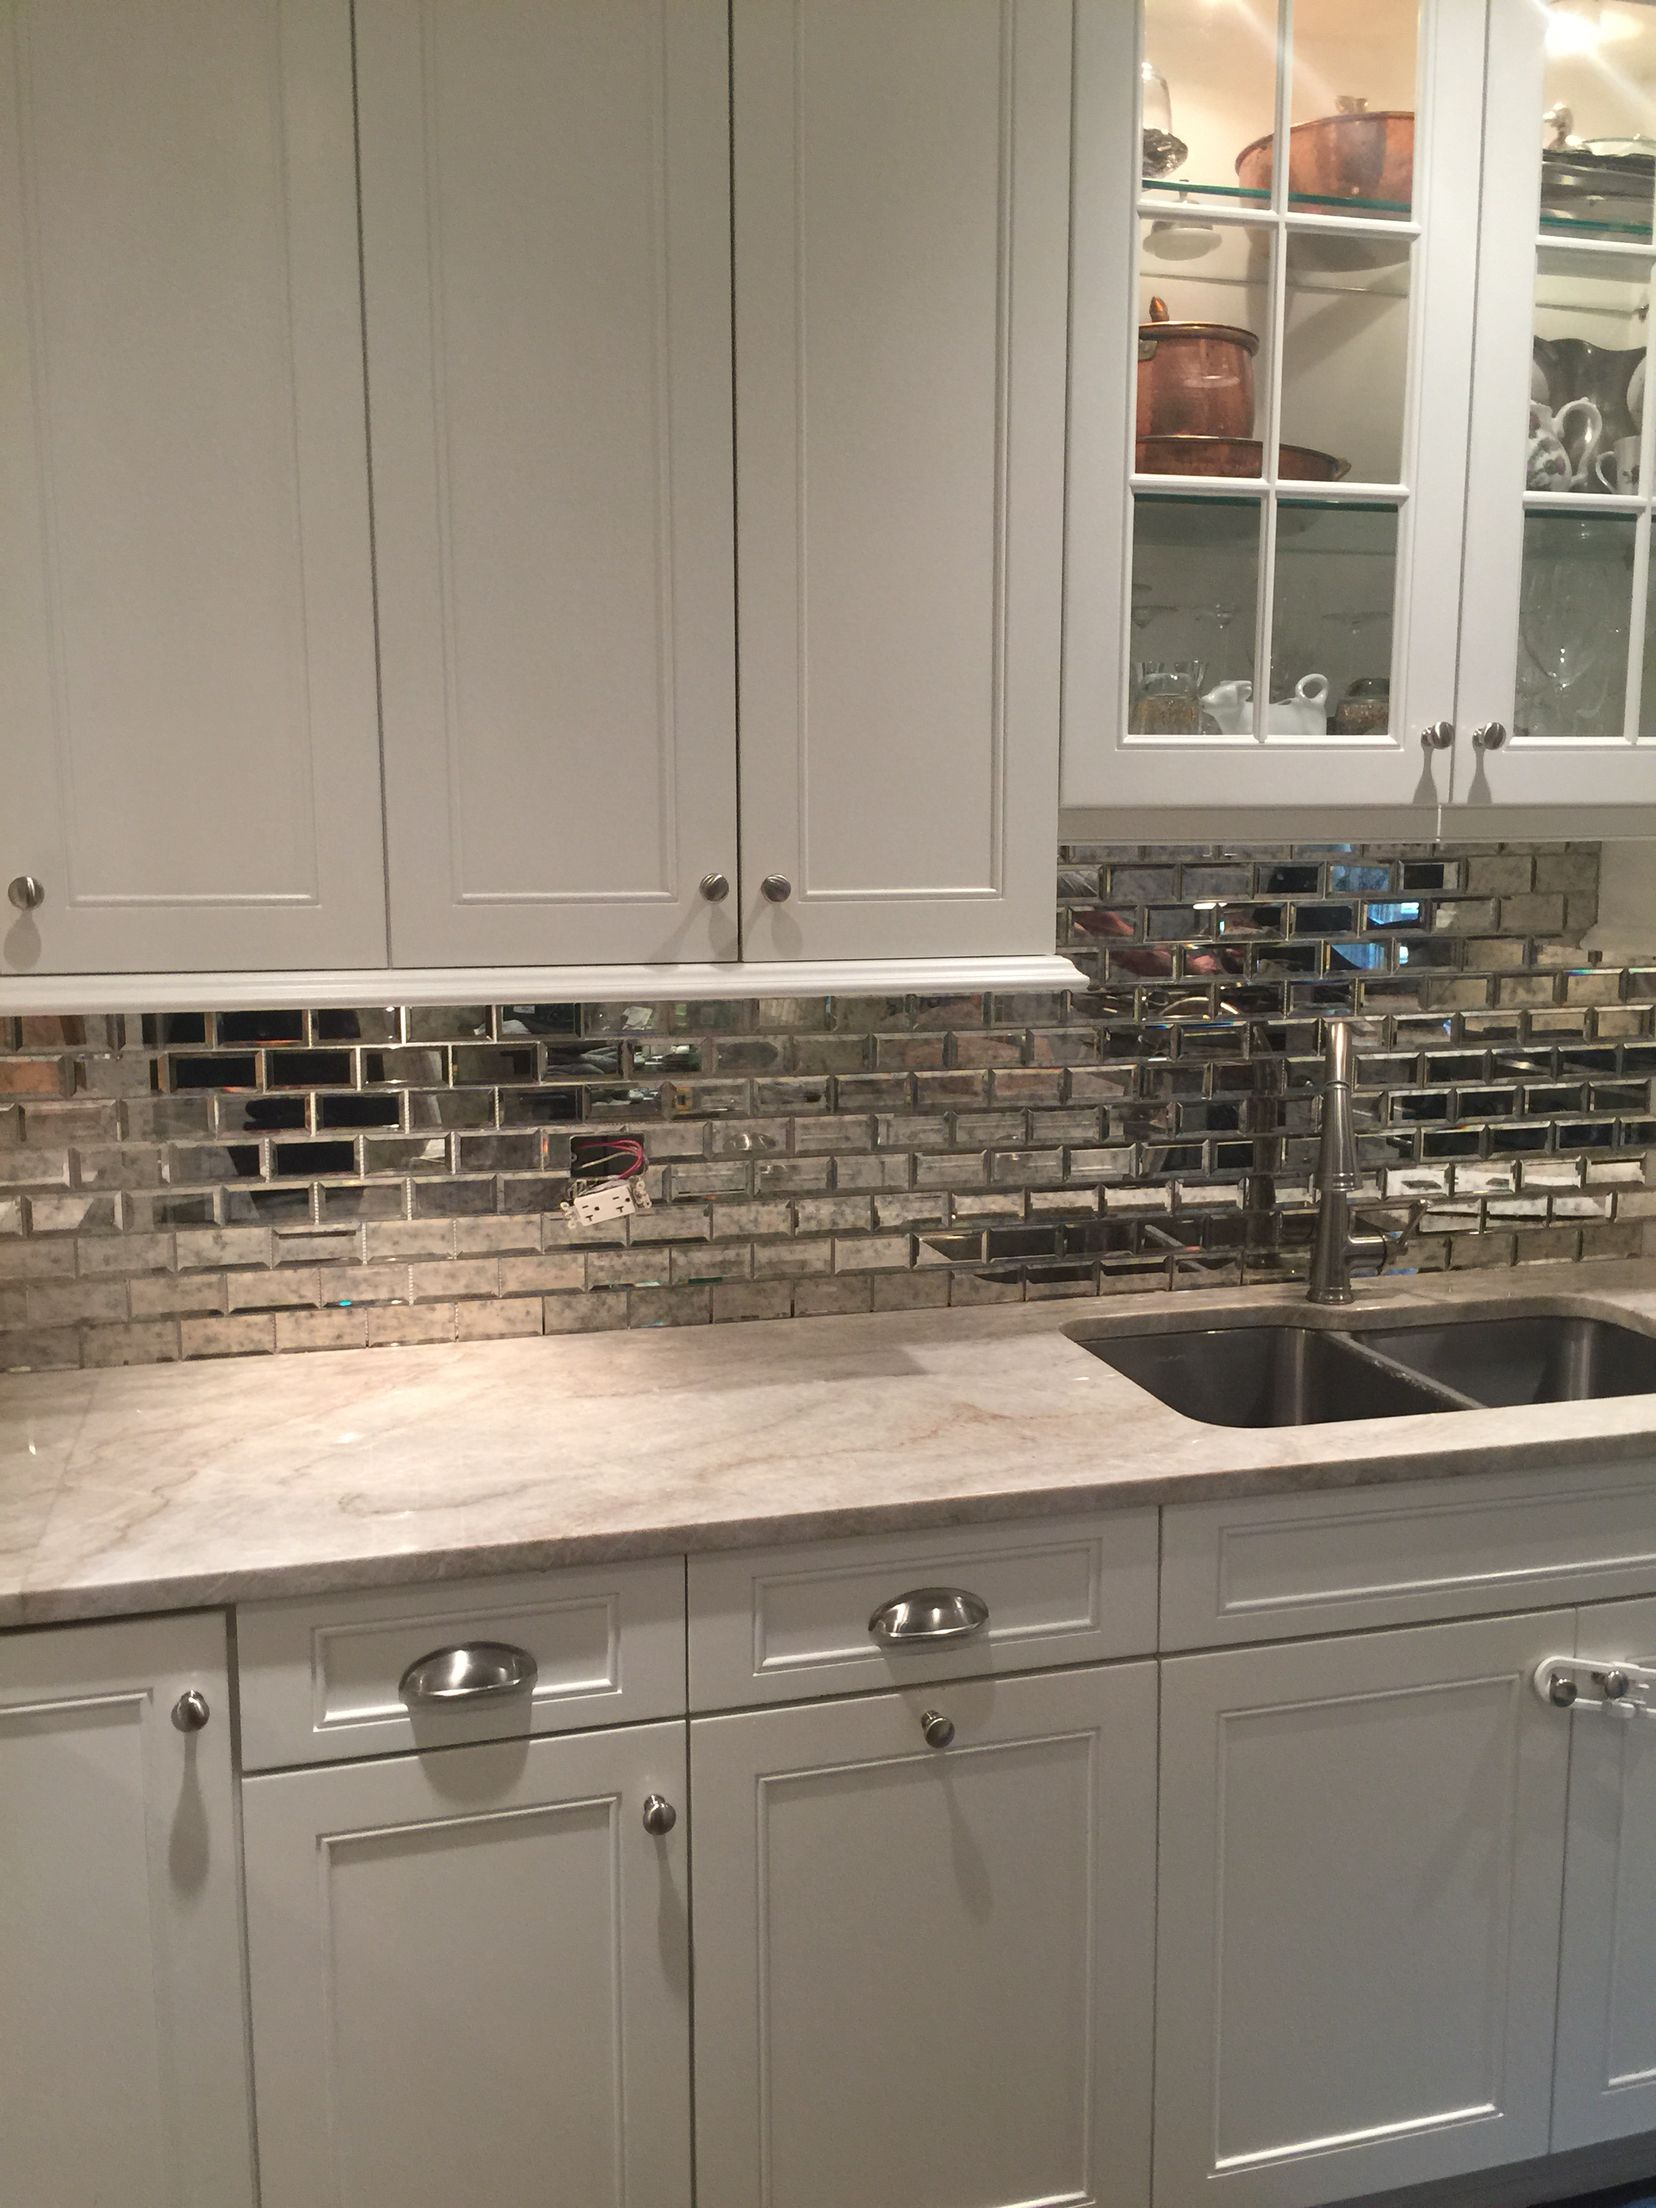 - Simply White Kitchen Cabinet Taj Mahal Quartzite Mirrored Subway